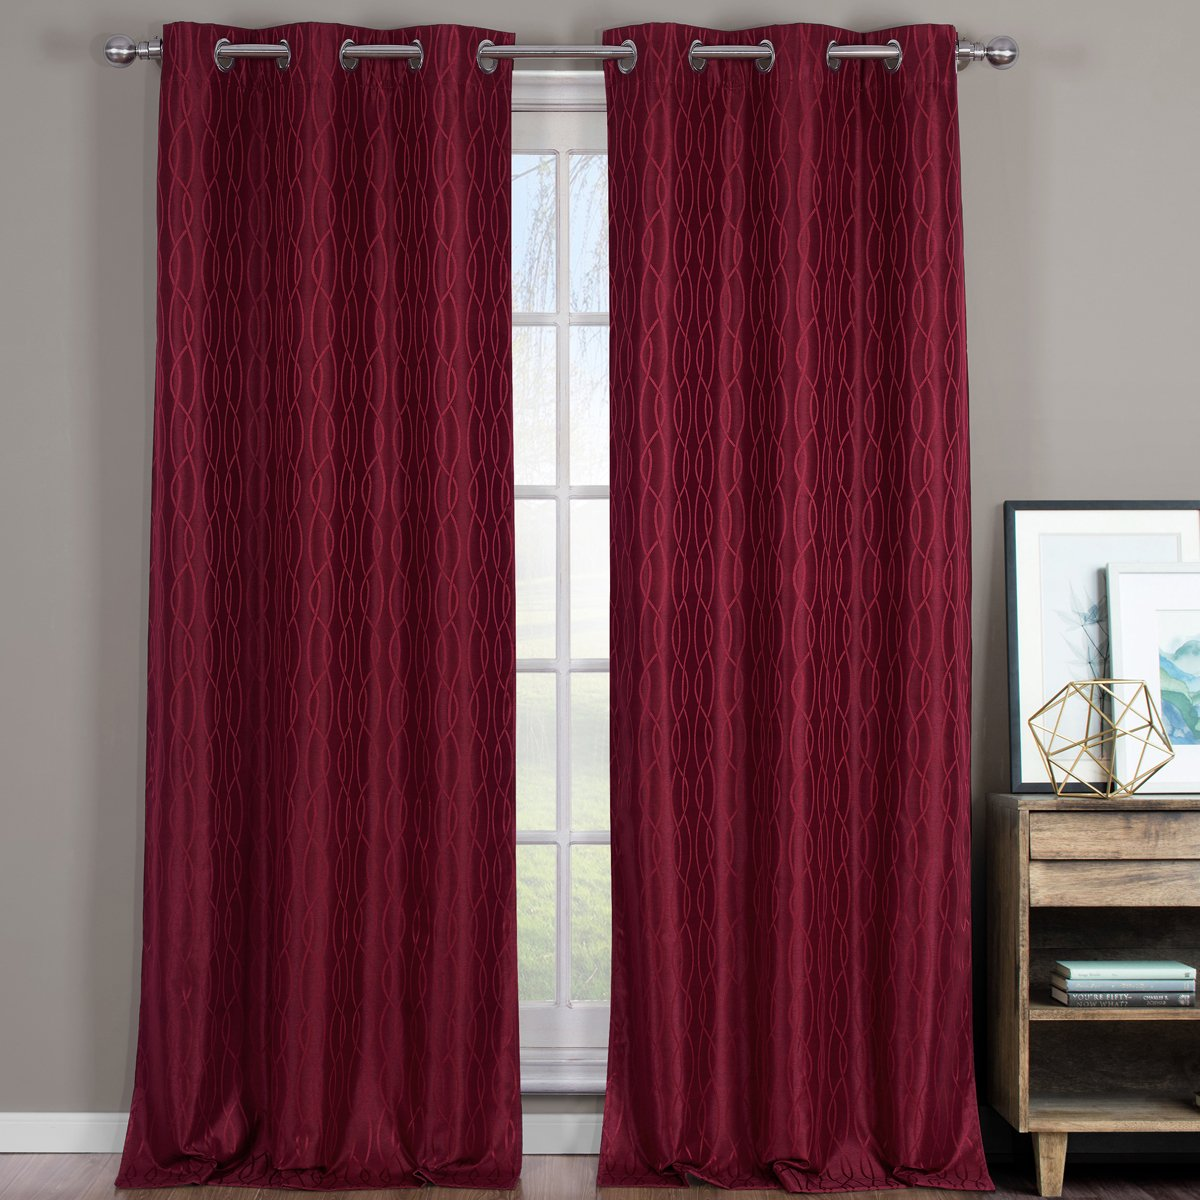 Red Window Curtain Panels Sale: Red Burgundy Floral Window Curtains